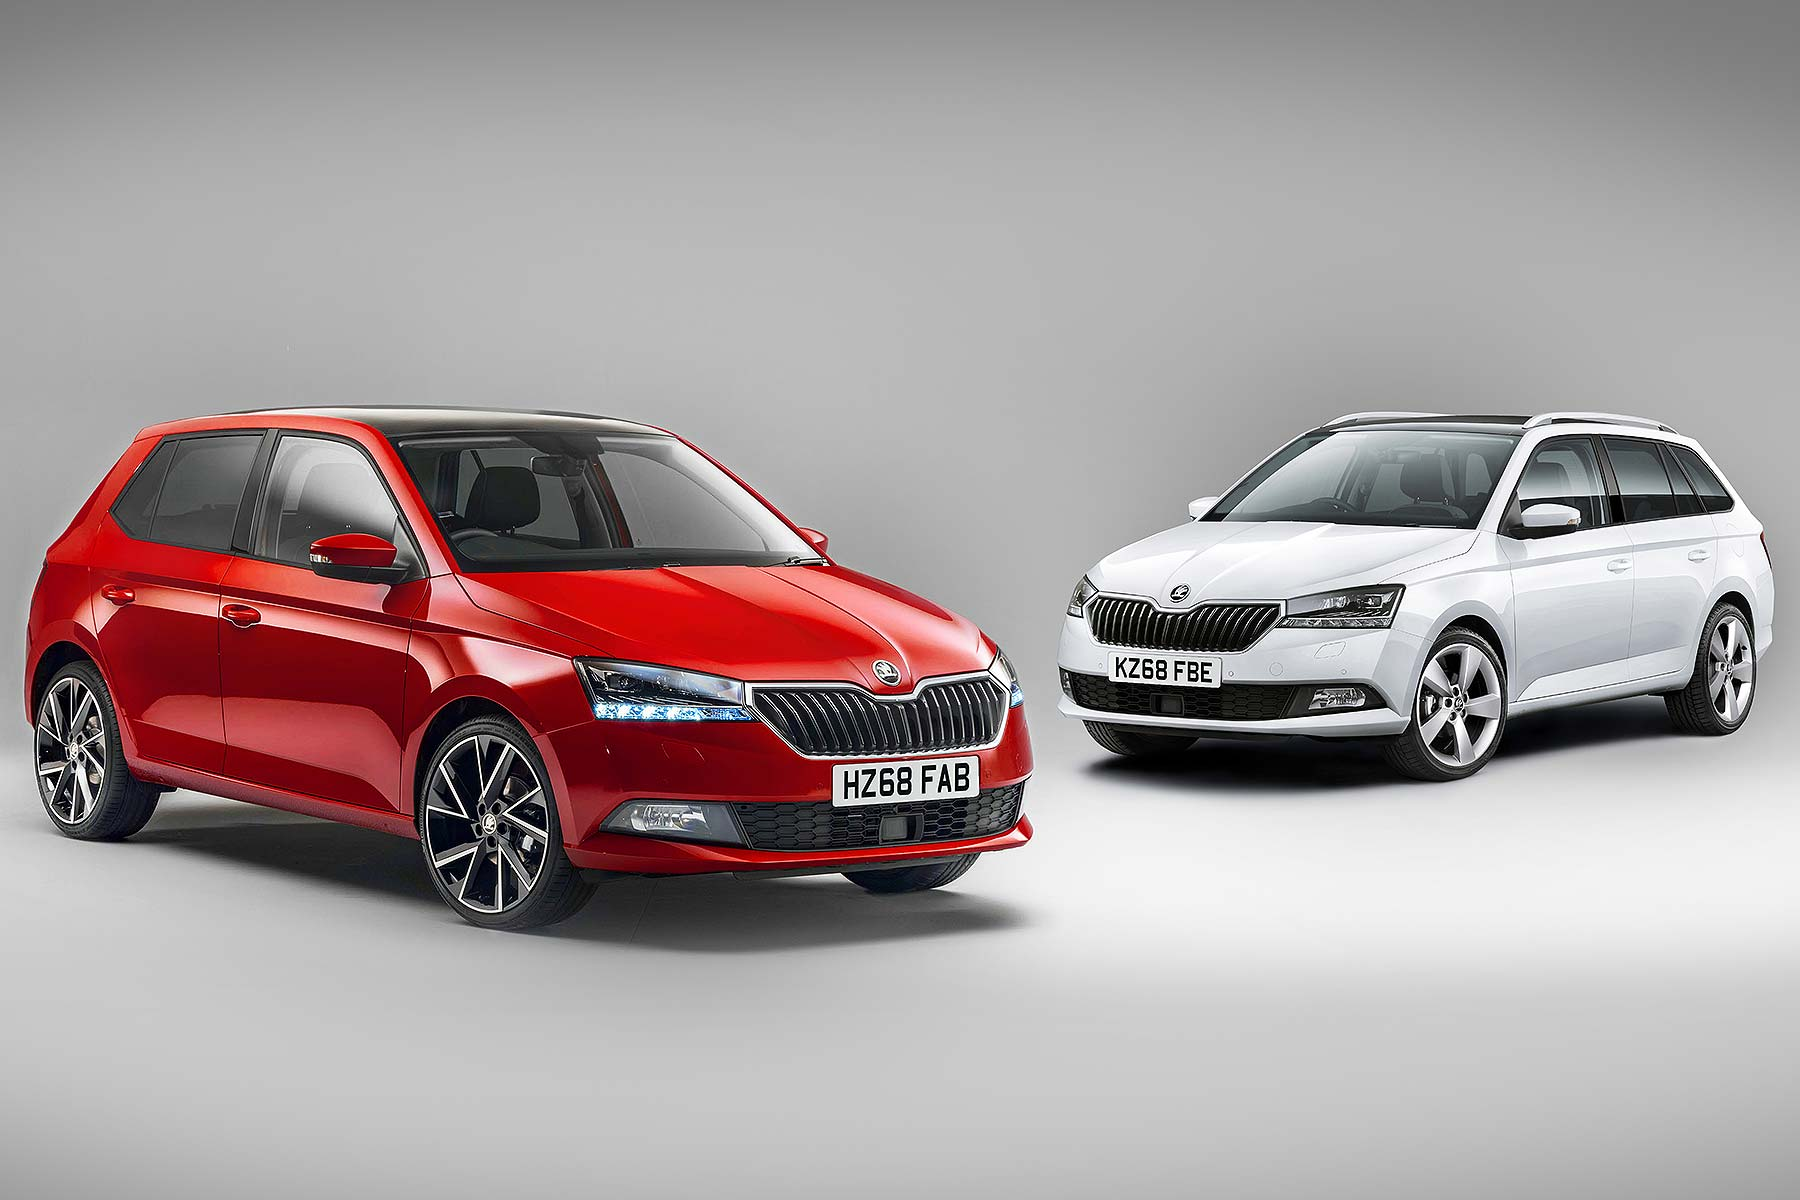 new 2019 skoda fabia prices from 12 840 motoring research. Black Bedroom Furniture Sets. Home Design Ideas